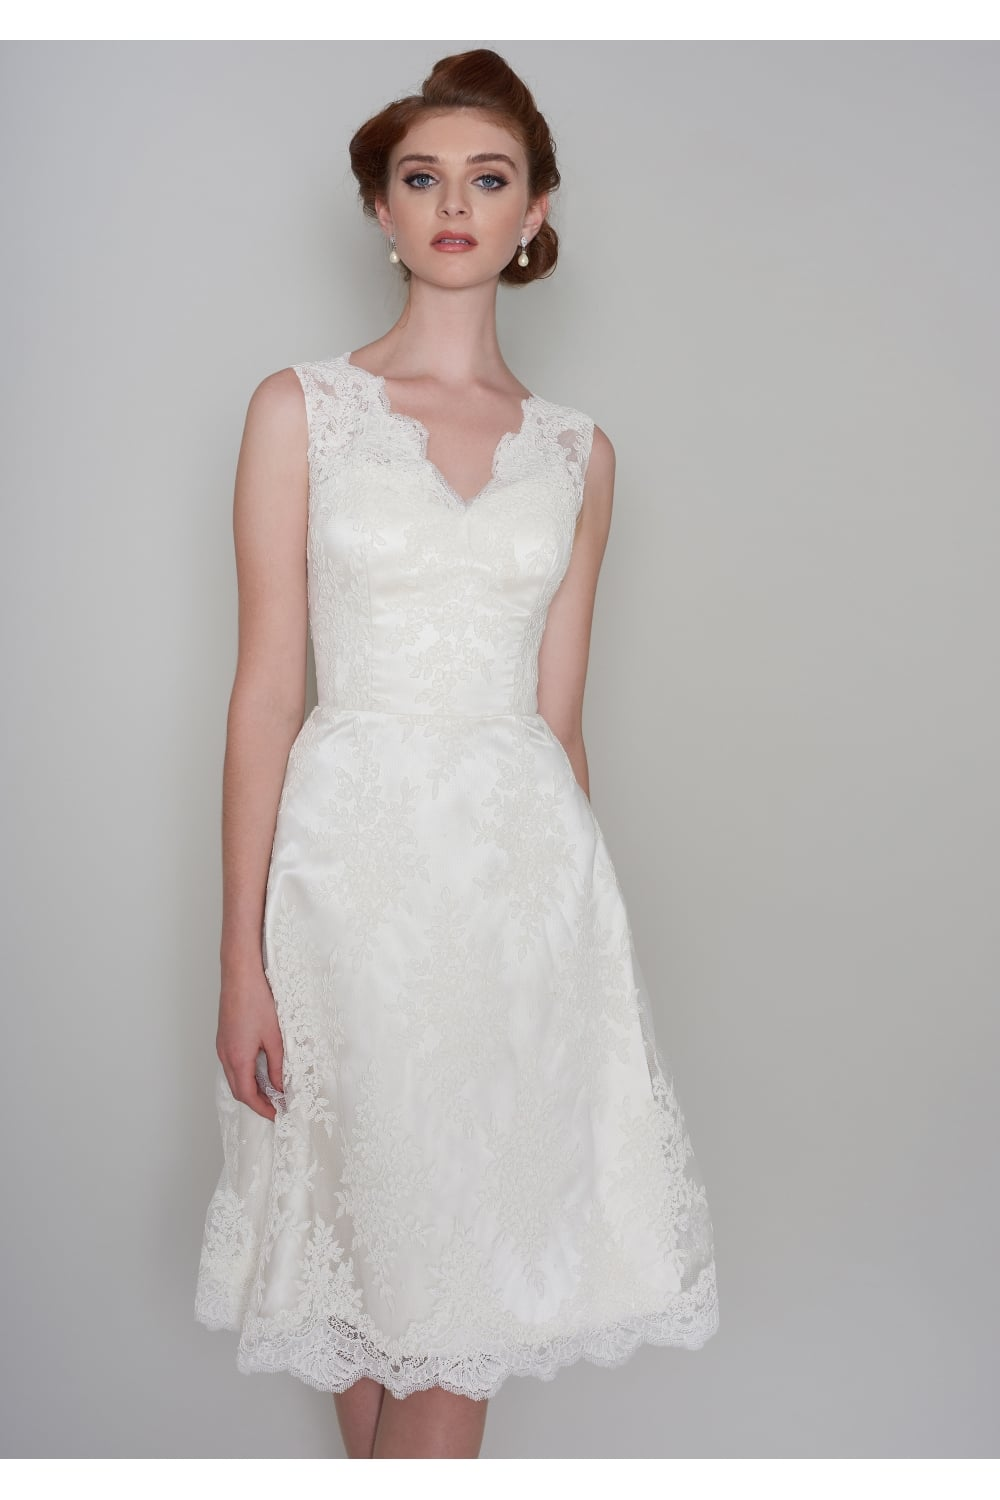 Loulou MIA Knee Length Lace Wedding Dress - Short, Knee, Tea Length ...